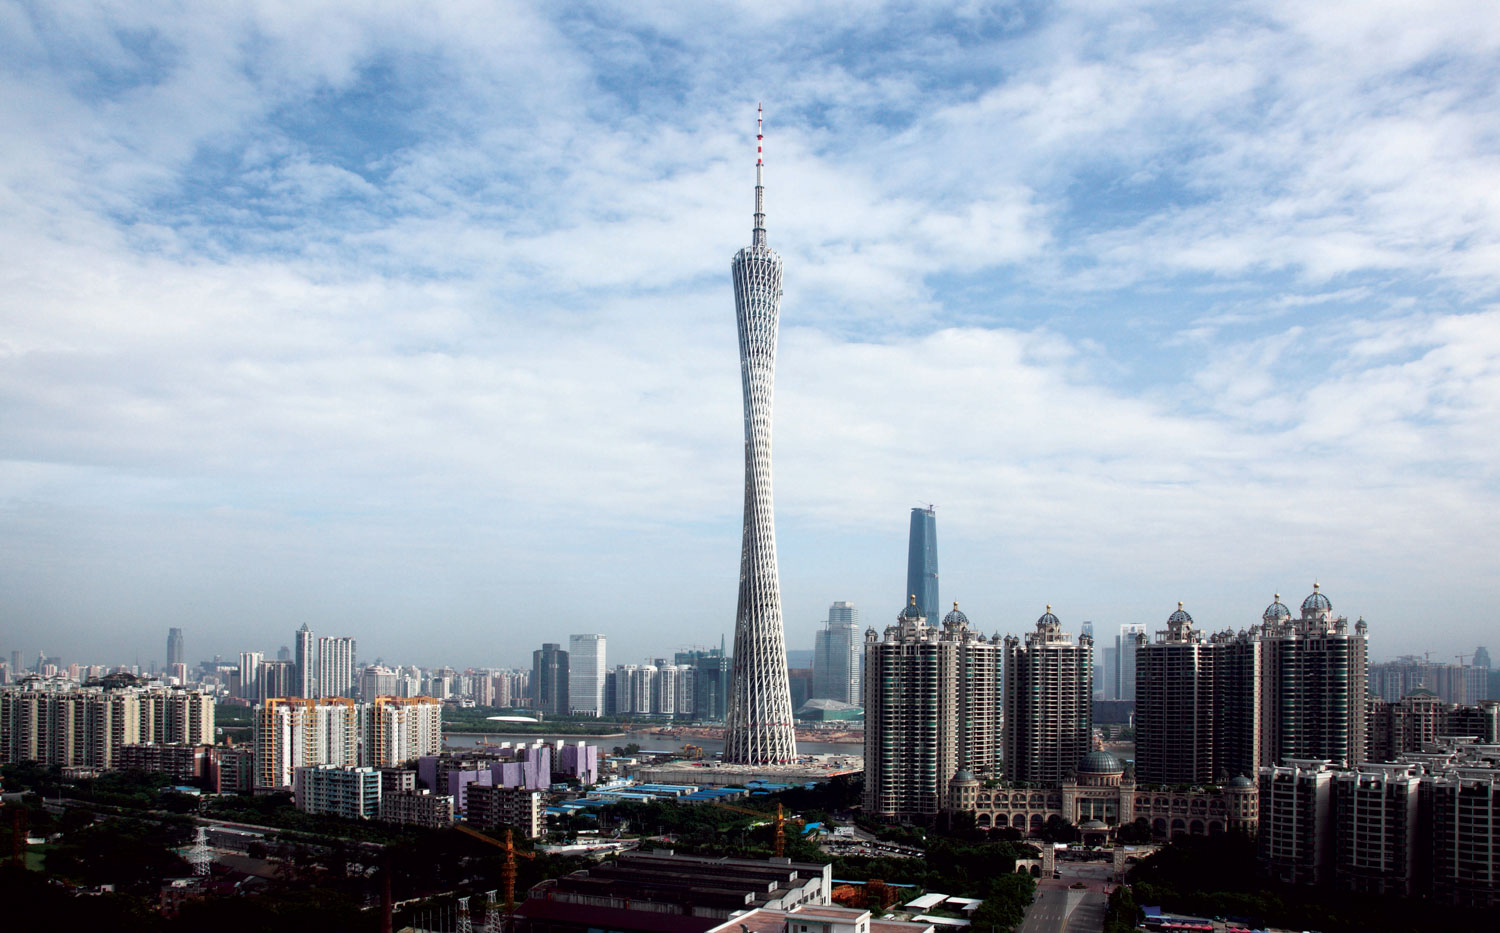 Canton Tower - Tallest Building in the World - Beautiful Global